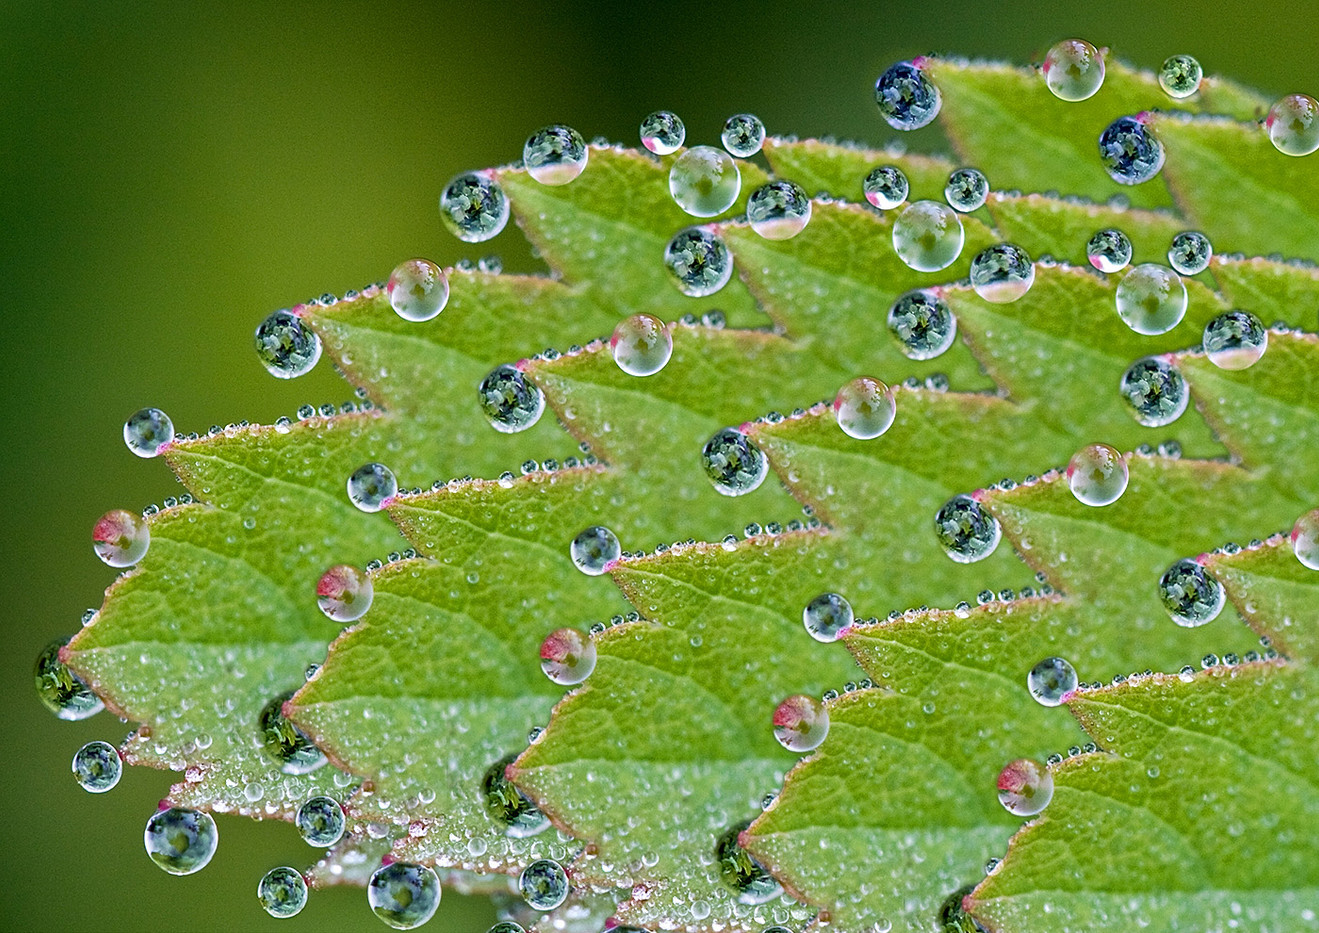 GROUP 1 19 NATURE'S BAUBLES by Peter Tulloch